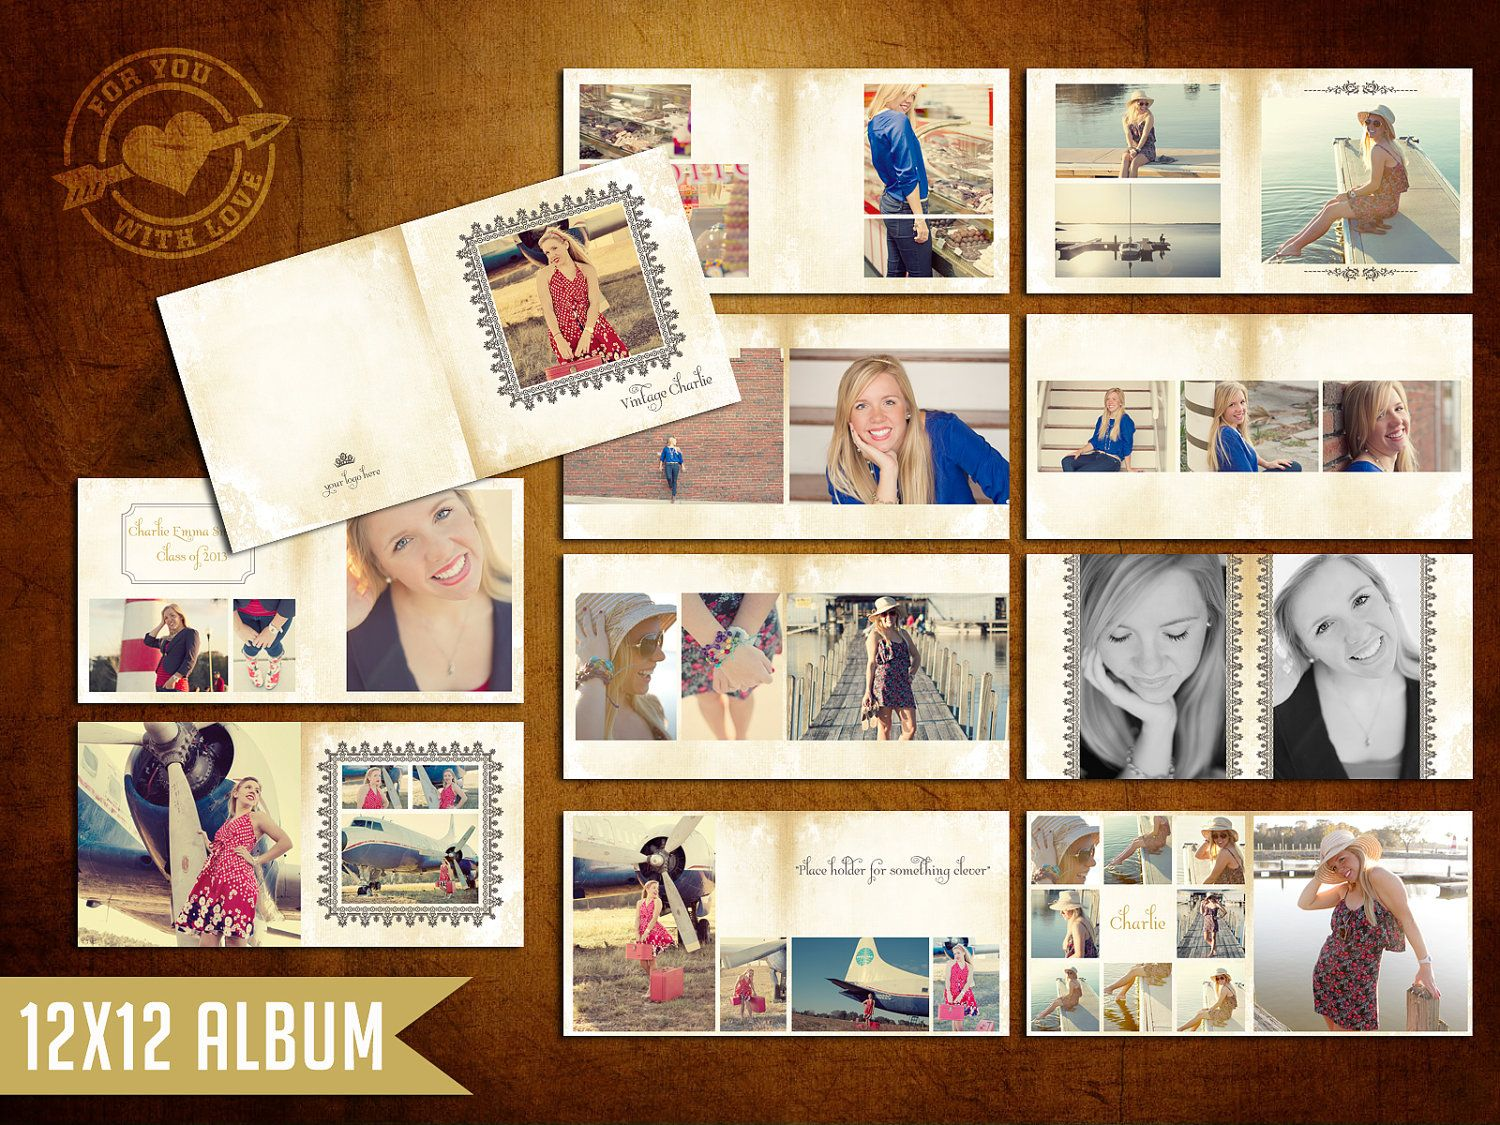 12x12 vintage charlie album template for photographers